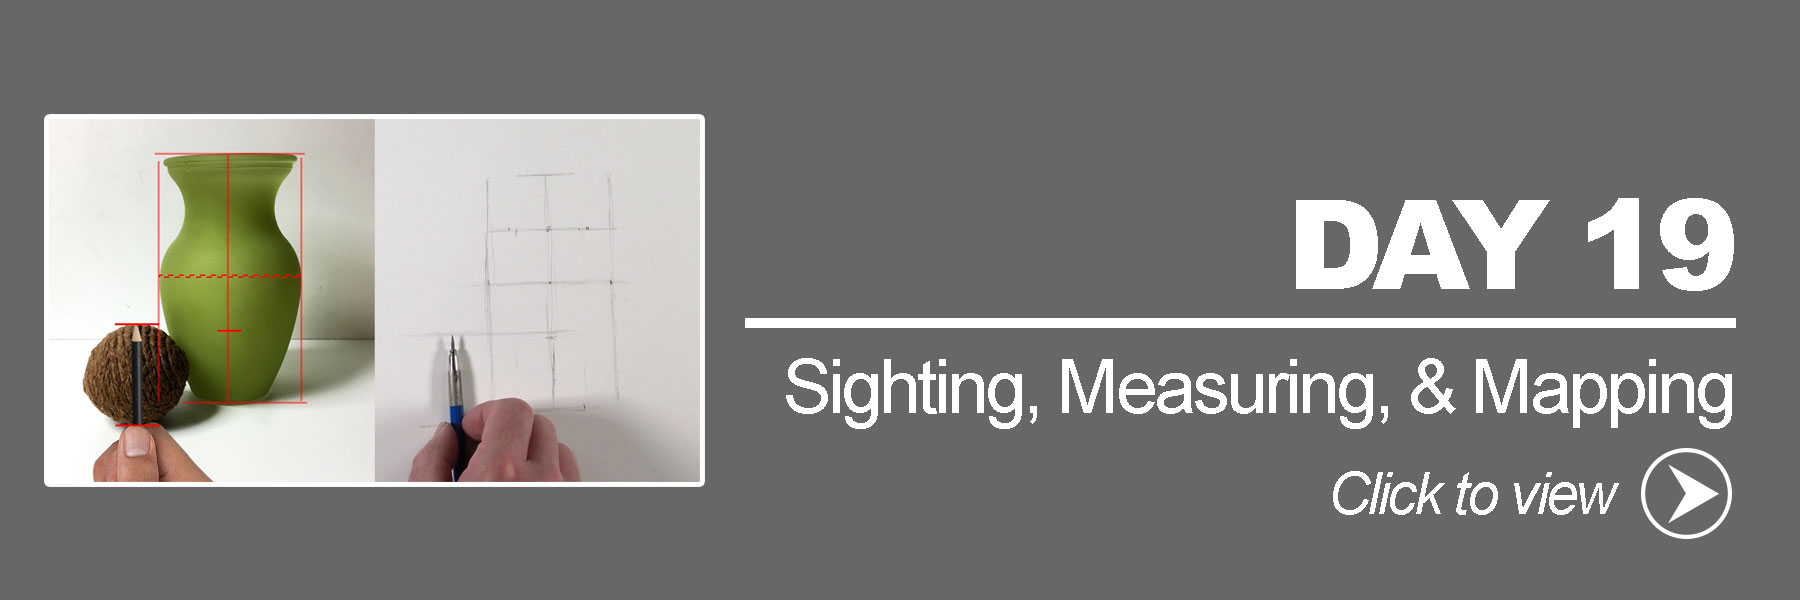 Sighting Measuring and Mapping